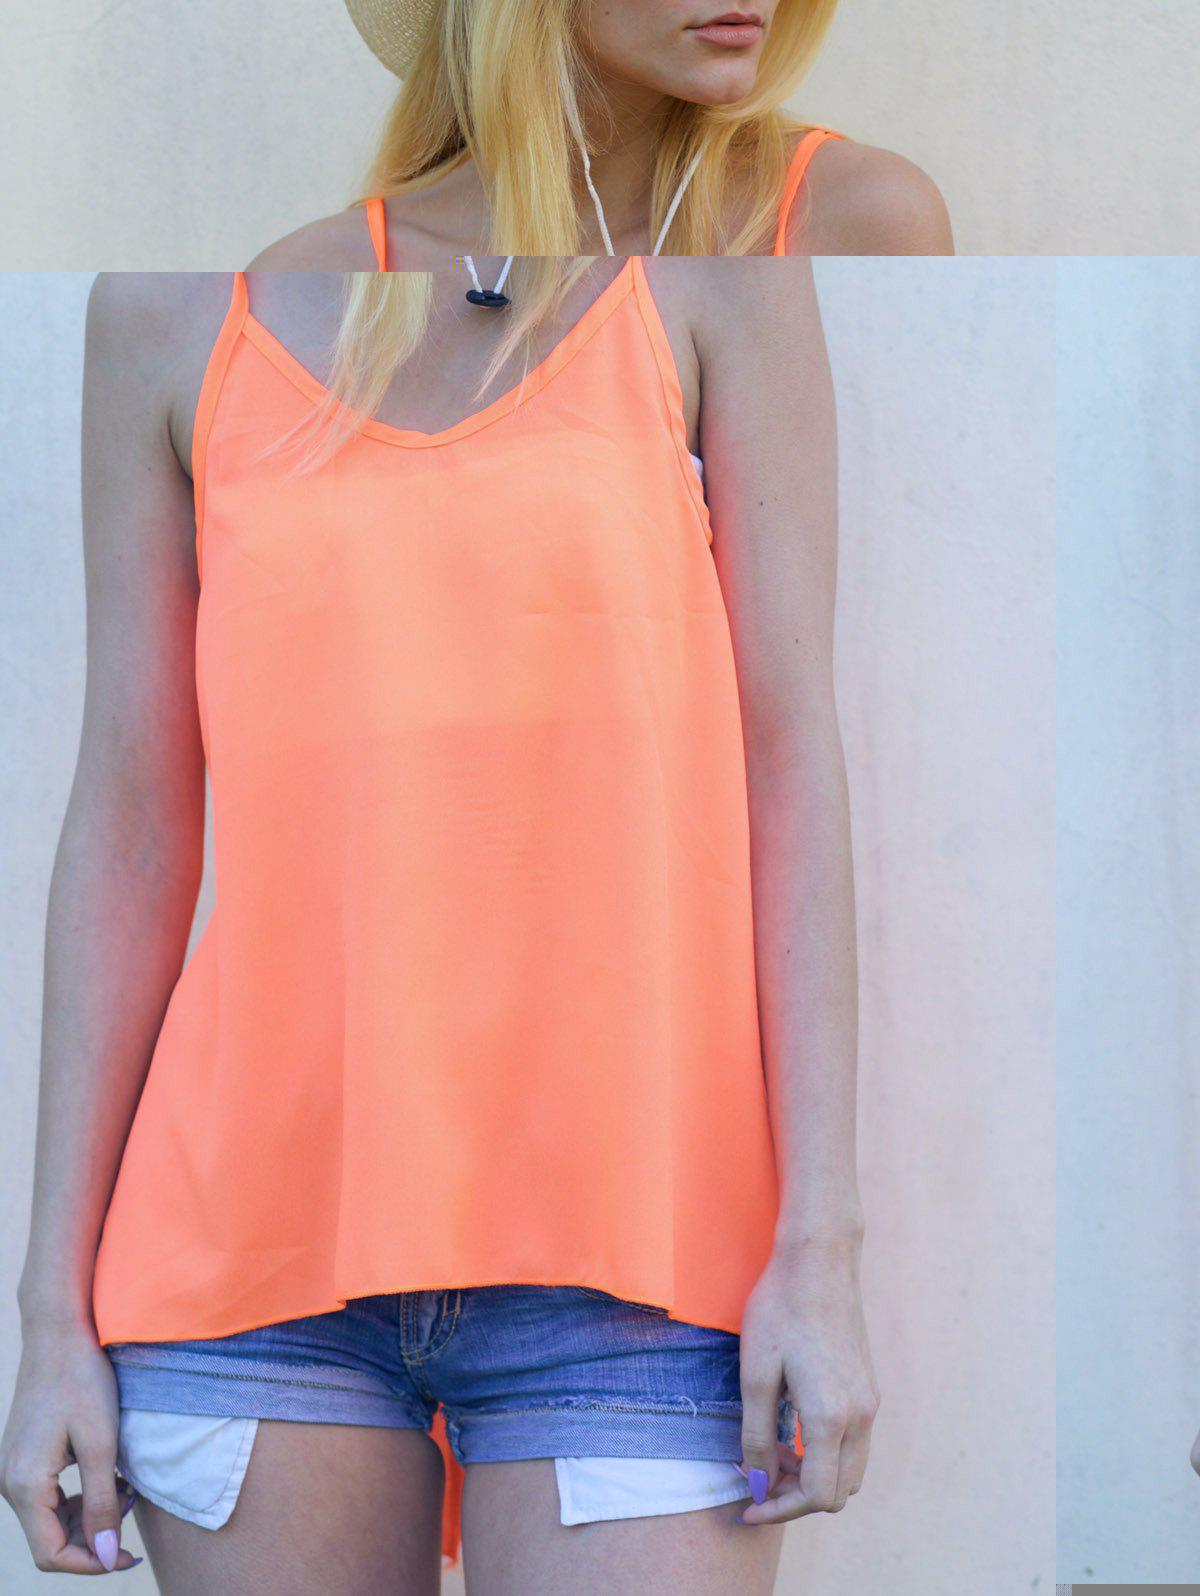 Sexy Women's Strappy Backless Criss-Cross Solid Color Chiffon Top - ORANGE L